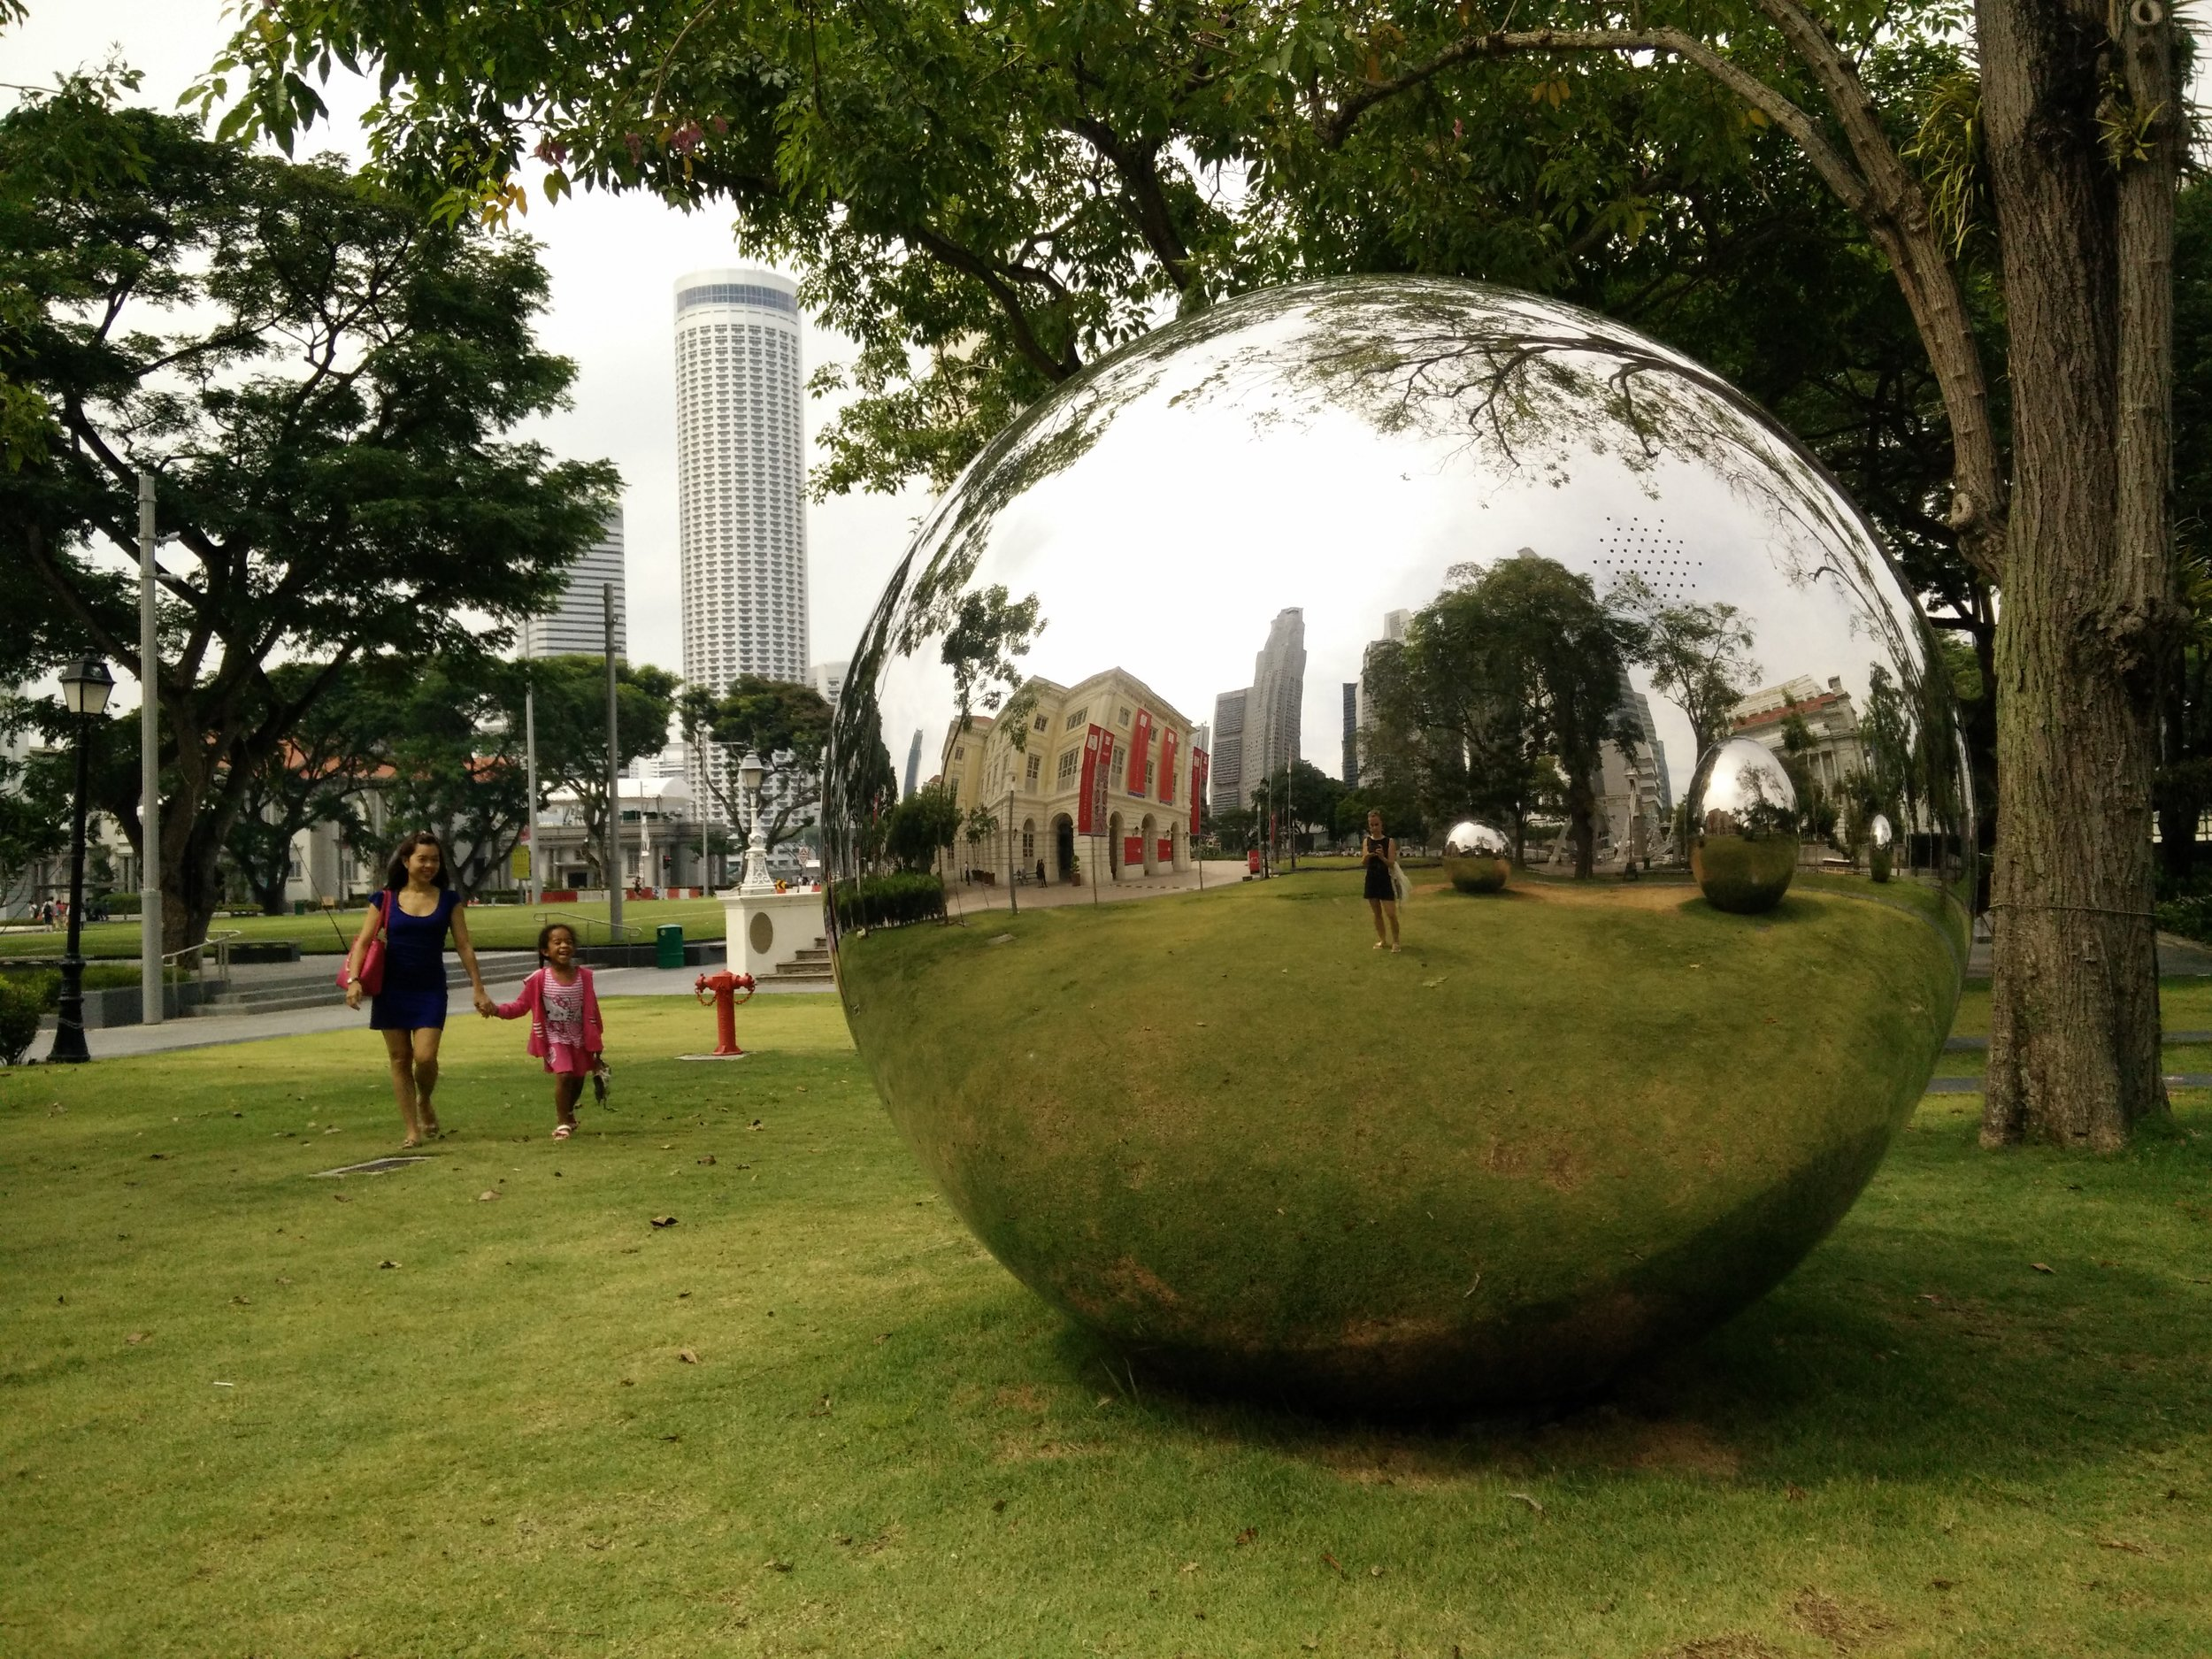 A gorgeus new work, 24 hours in Singapore by Baet Yeok Kuan consists of five huge metal spheres with integrated sounds of ordinary everyday life in the city, a time capsule of sorts